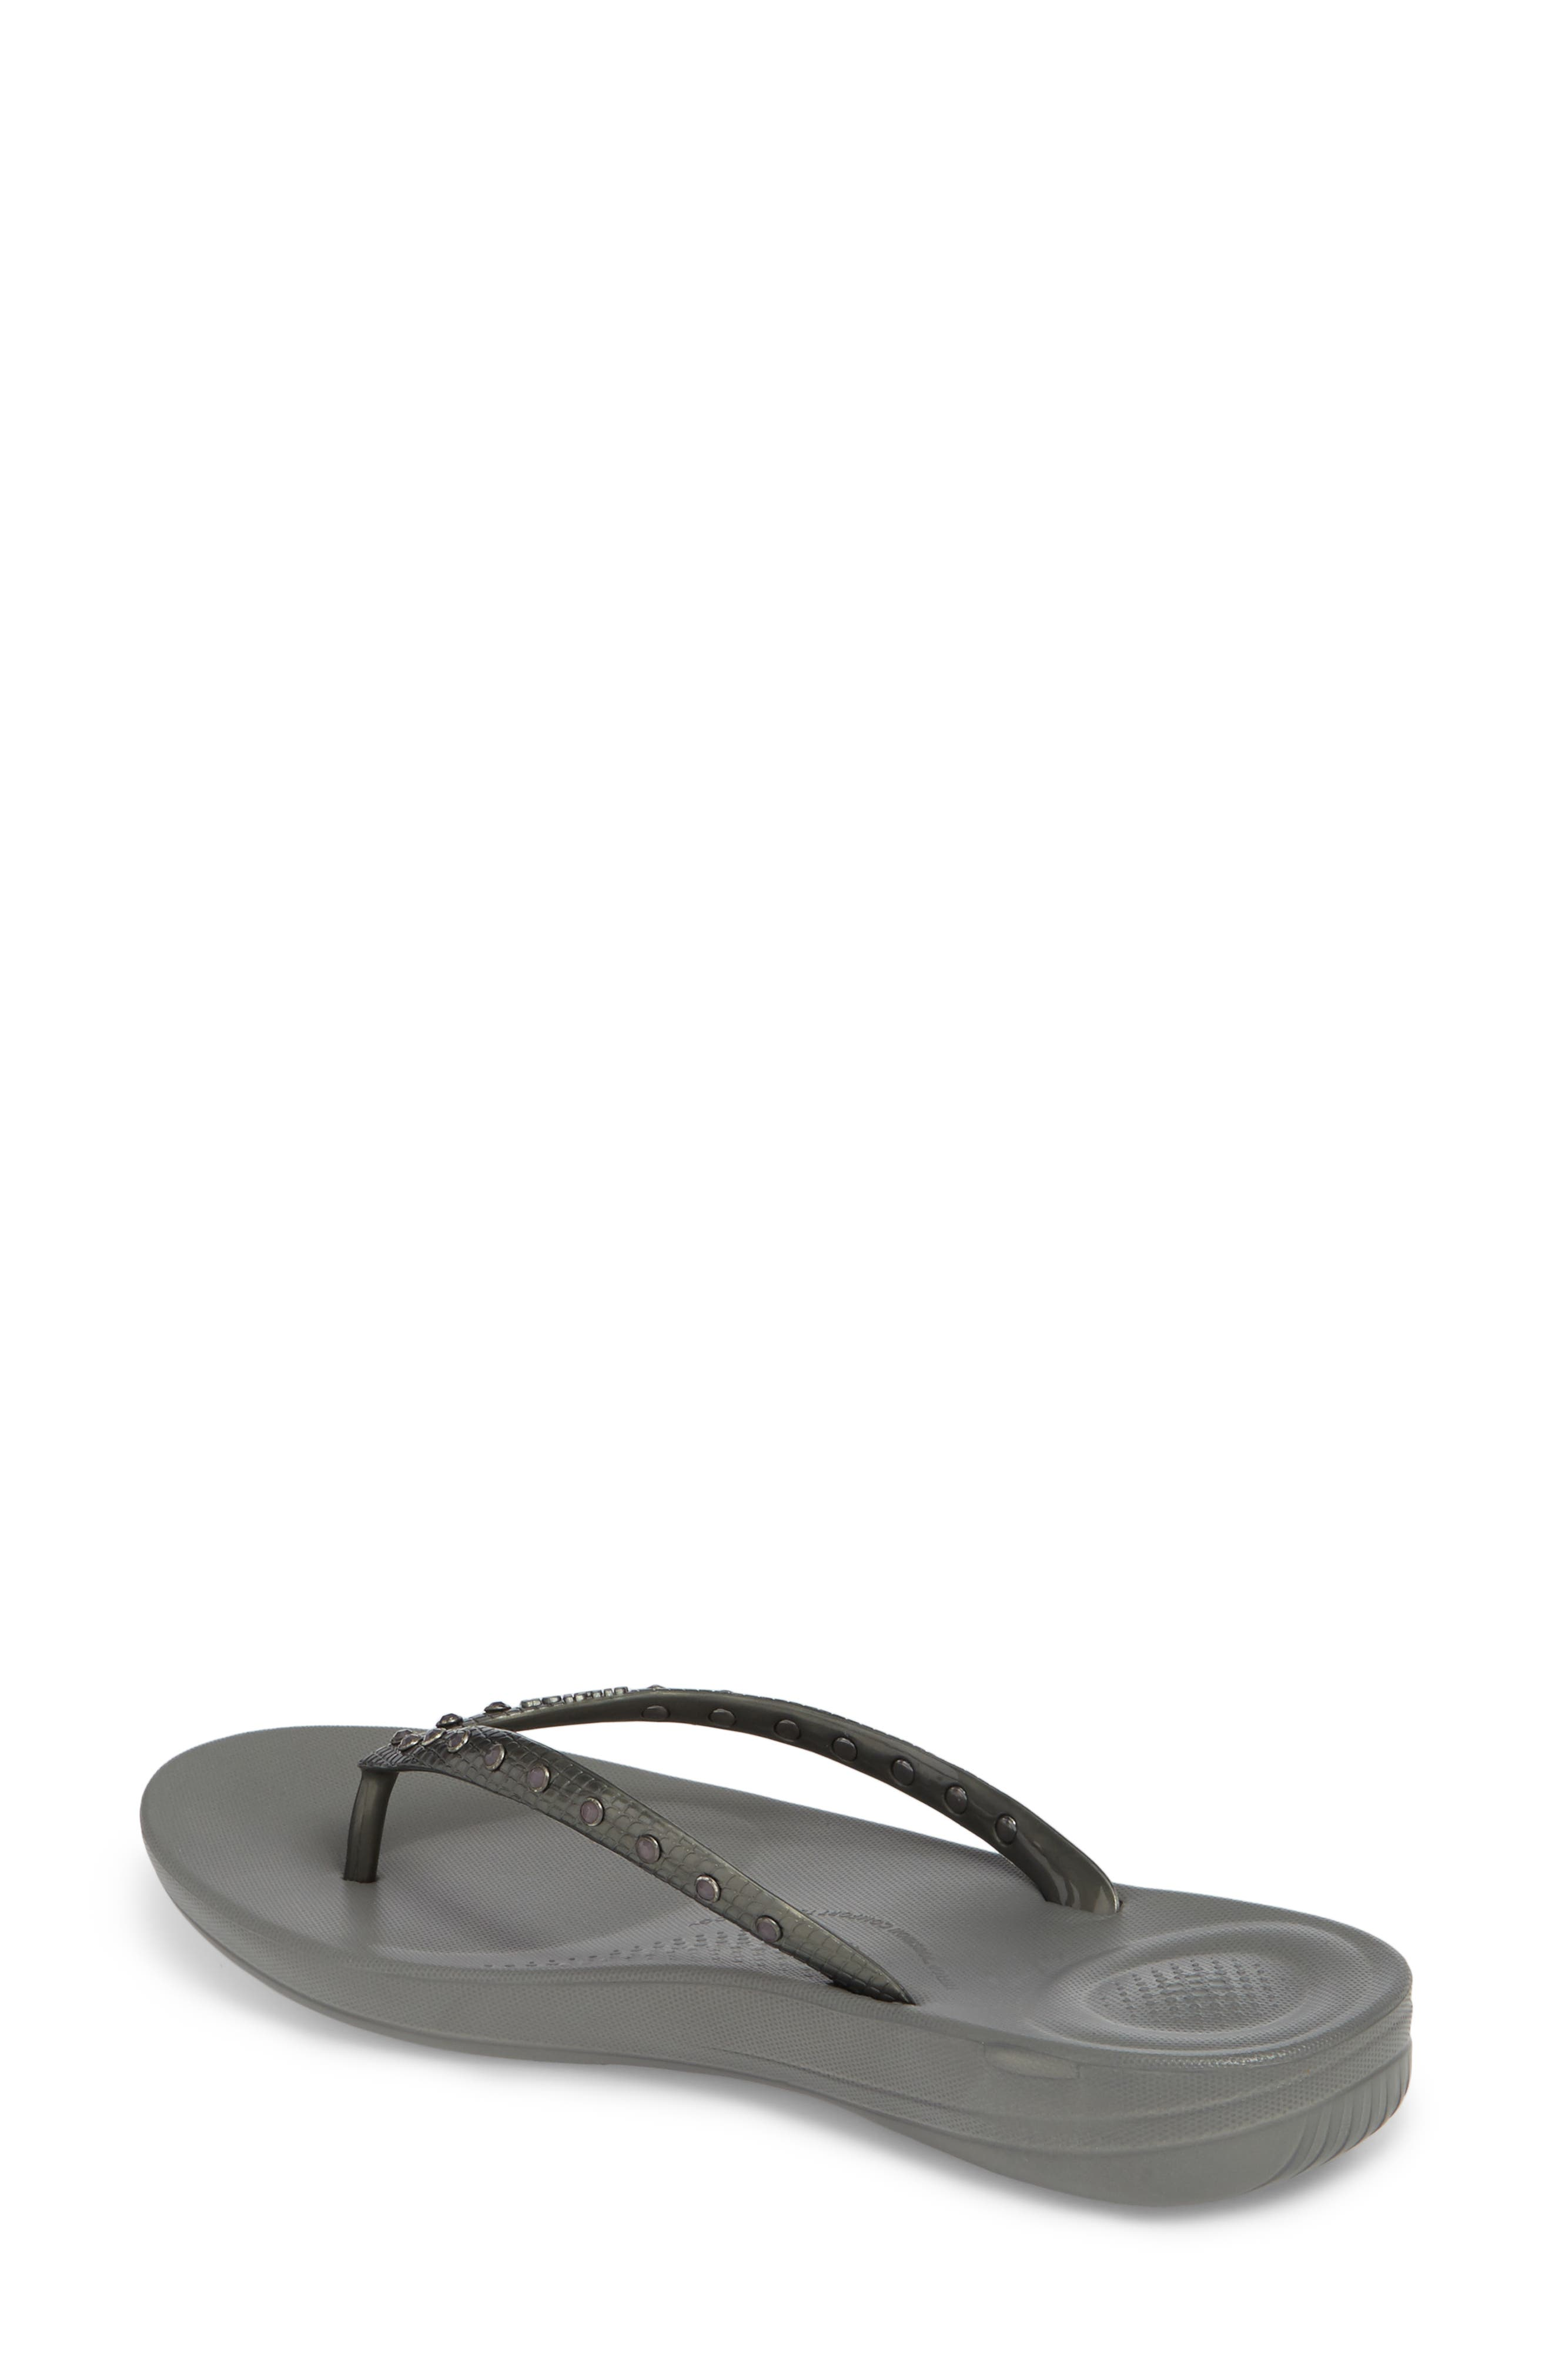 iQushion Flip Flop,                             Alternate thumbnail 2, color,                             CHARCOAL GREY